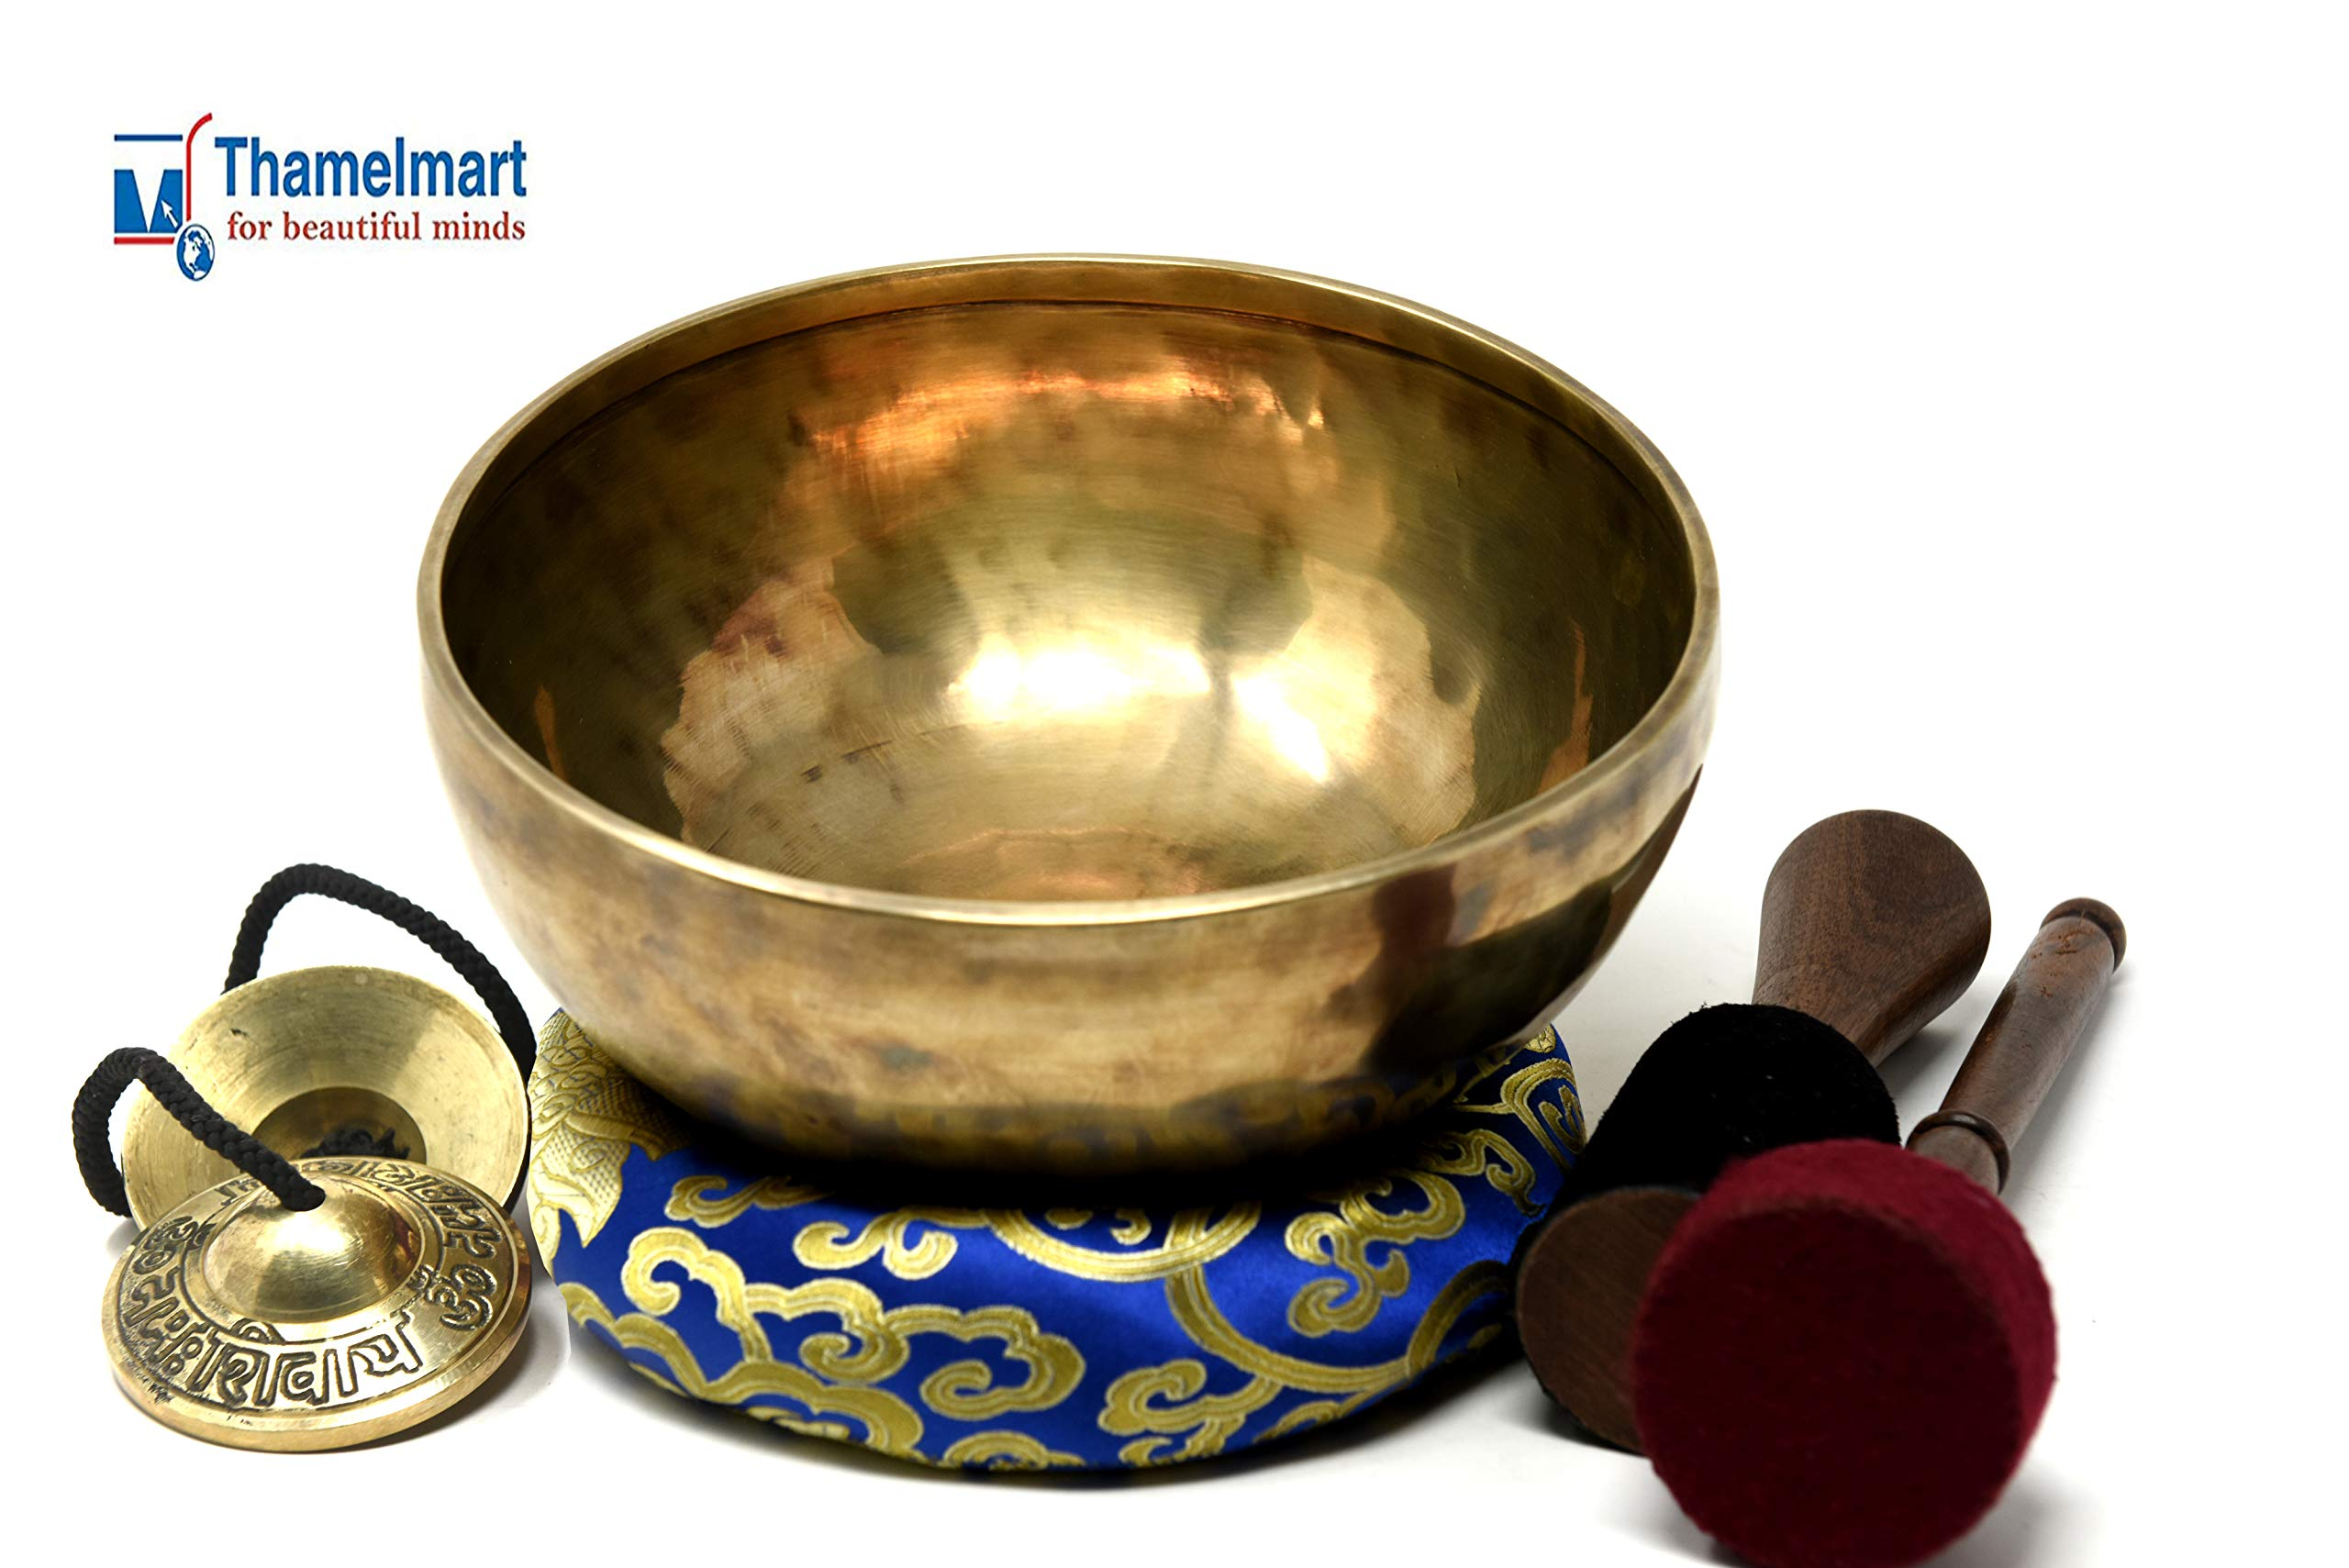 8.5'' Root Chara HandHammered Meditation Singing Bowl ~Antique Finished for Relaxation,Sound Bath,Healing,Therapy & Mindfulness~ included Tingsha cymbals Mallet,Silk Cushion,DrumStick~Handmade in Nepal